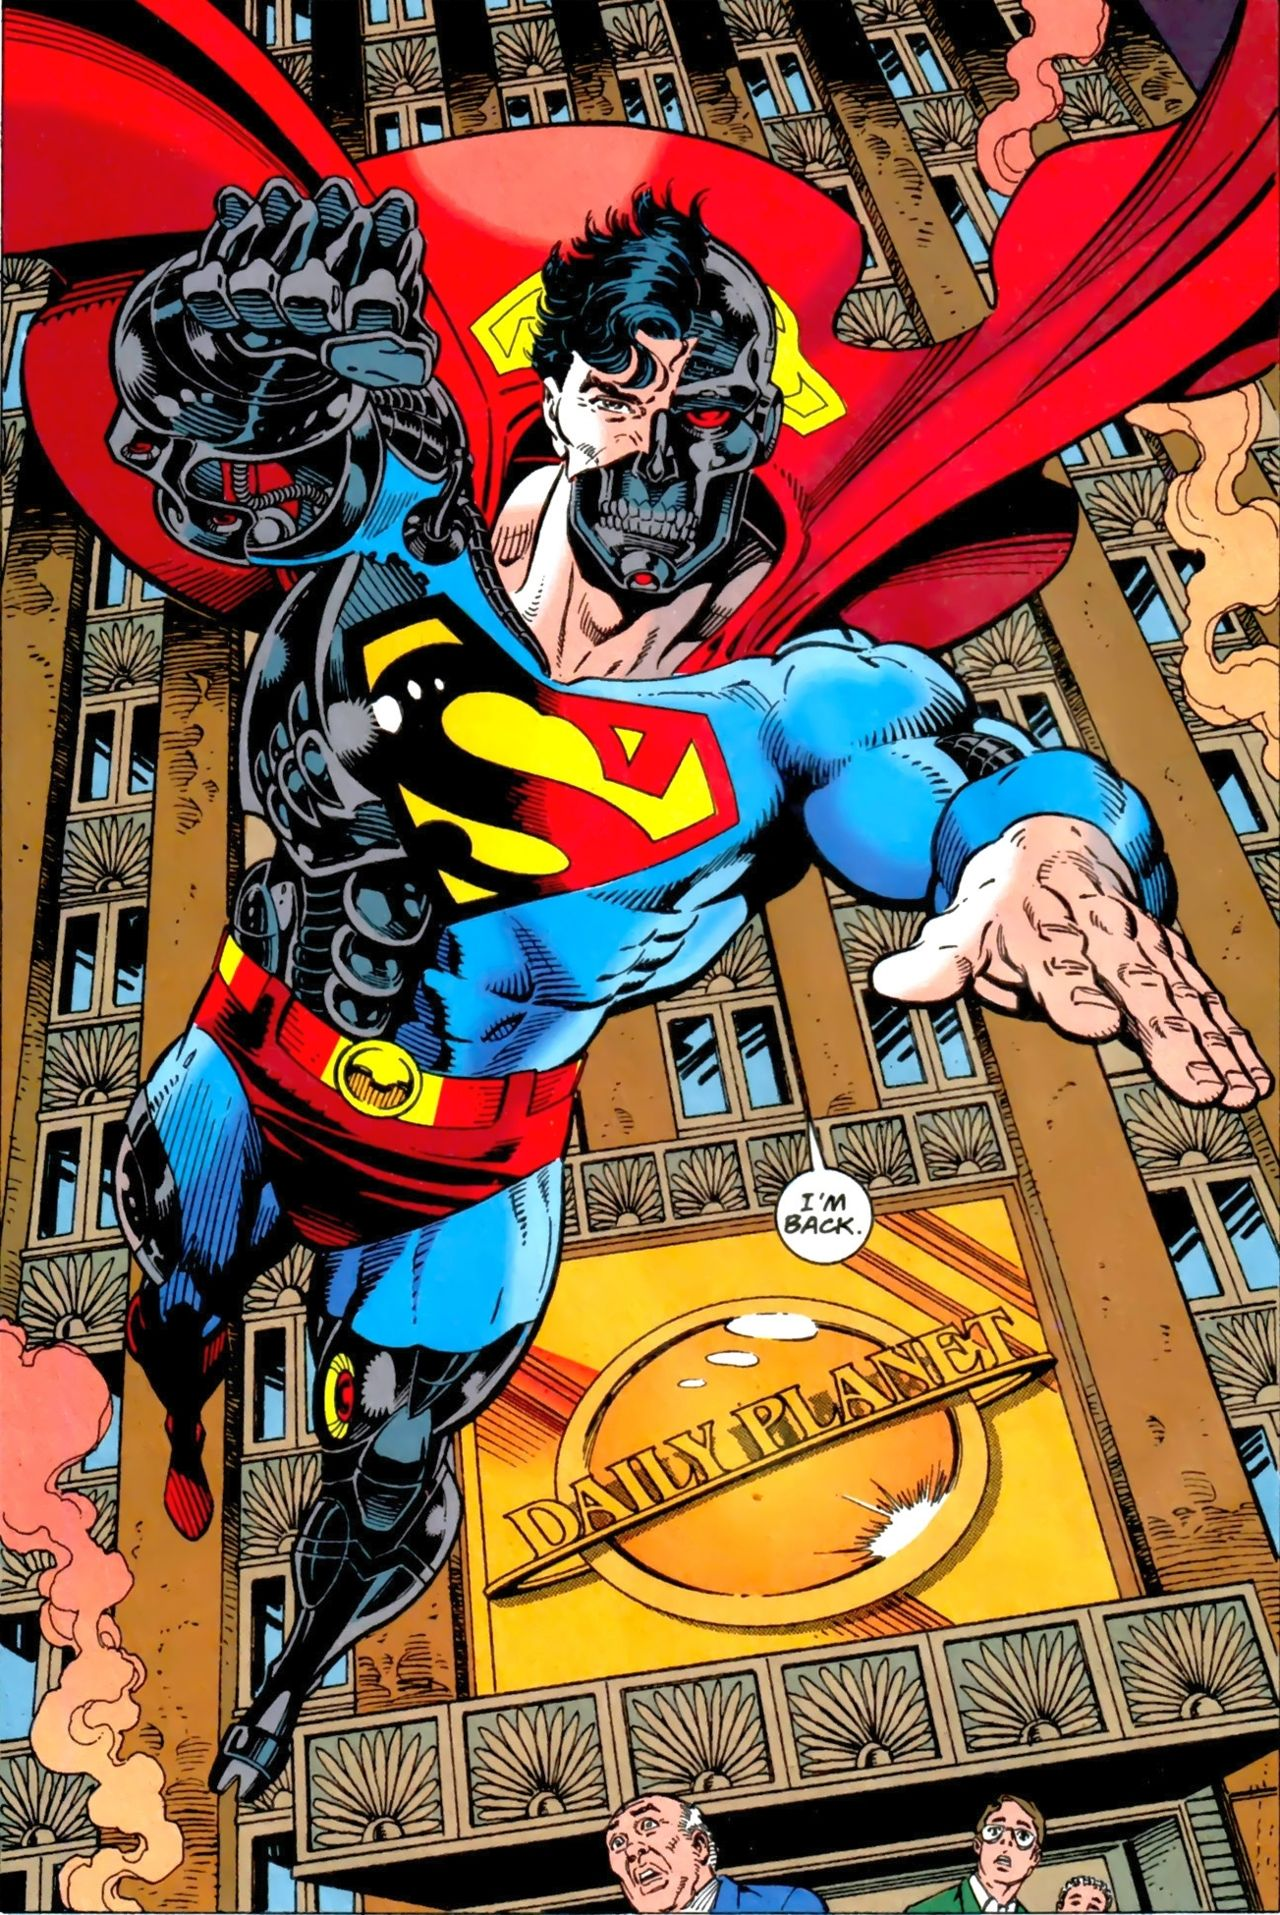 Reign Of The Supermen The Cyborg A K A Hank Henshaw With His Appearance Resembling A Certain Futuristic Andro Comic Villains Superman Comic Superhero Comic